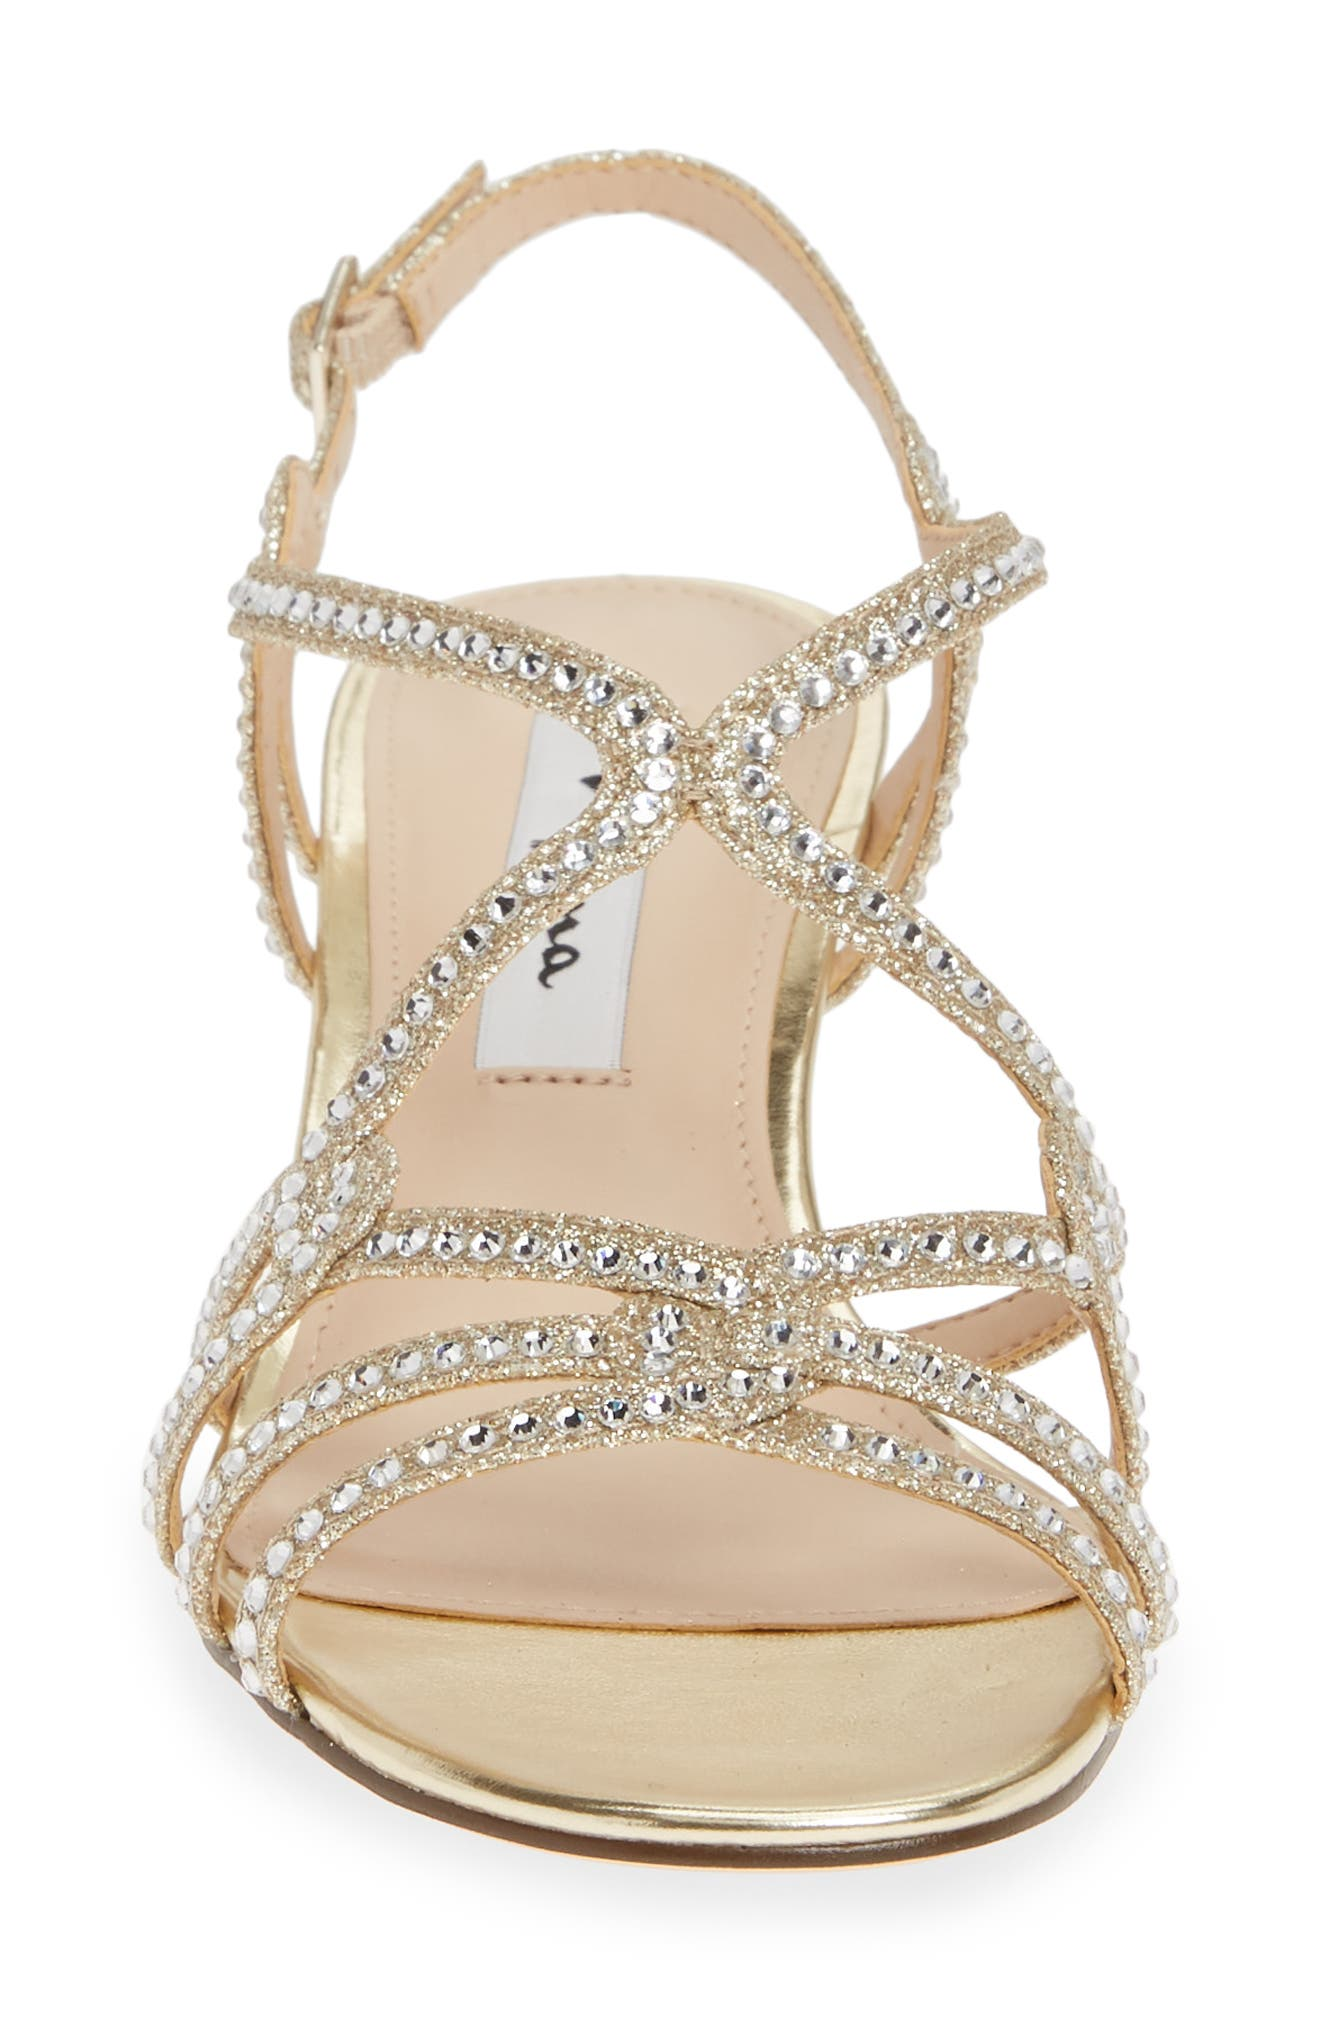 NINA, Fynlee Crystal Embellished Wedge Sandal, Alternate thumbnail 4, color, GOLD GLITTER FABRIC